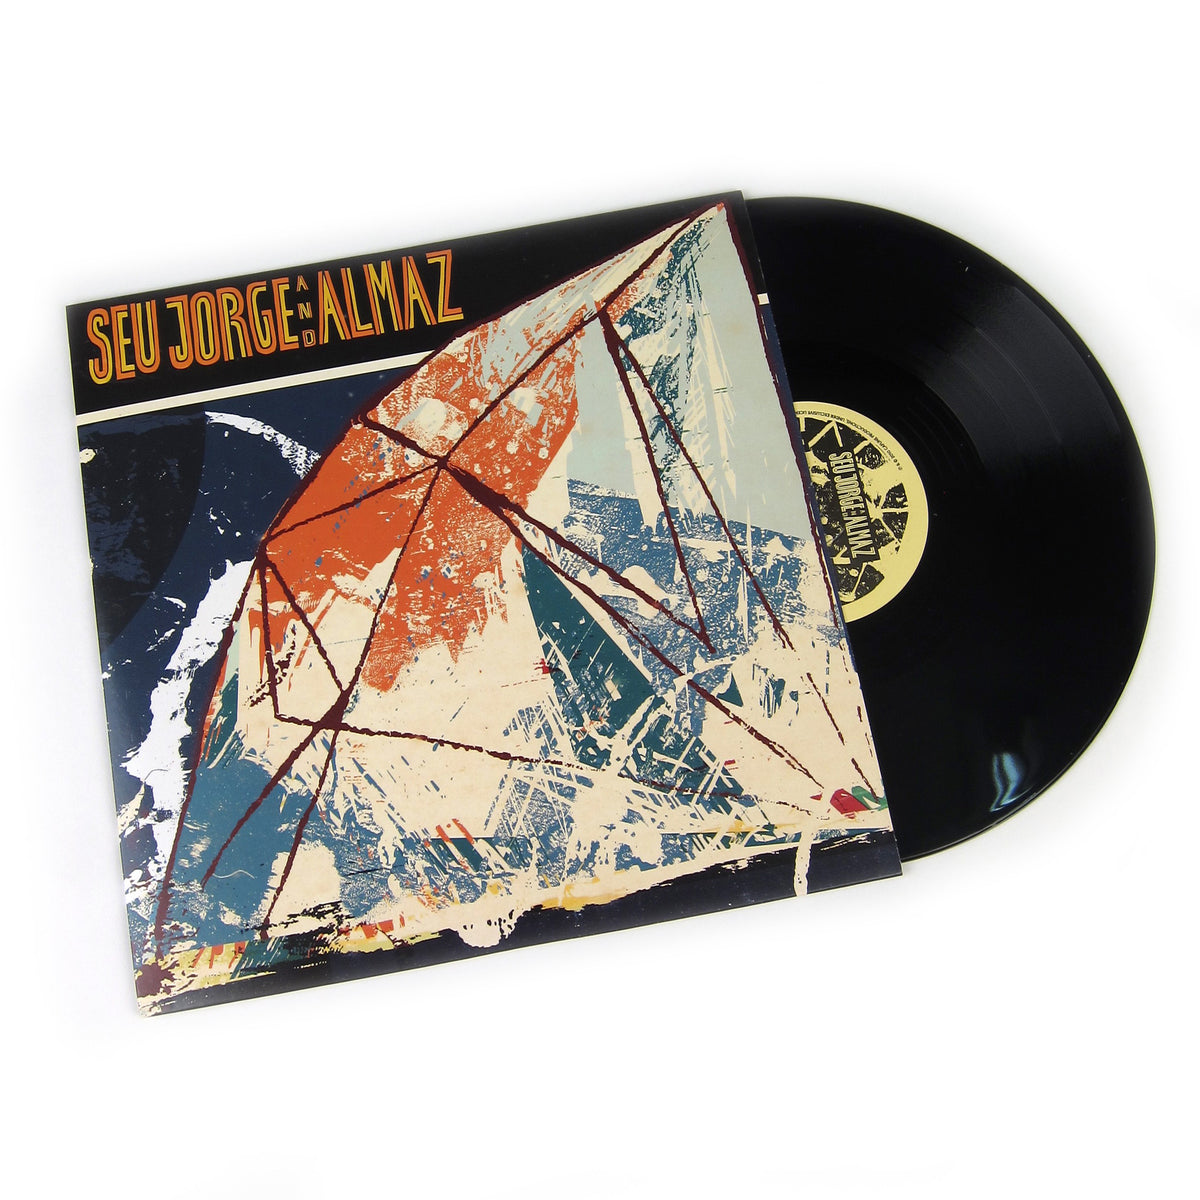 Seu Jorge And Almaz: Seu Jorge And Almaz Vinyl 2LP